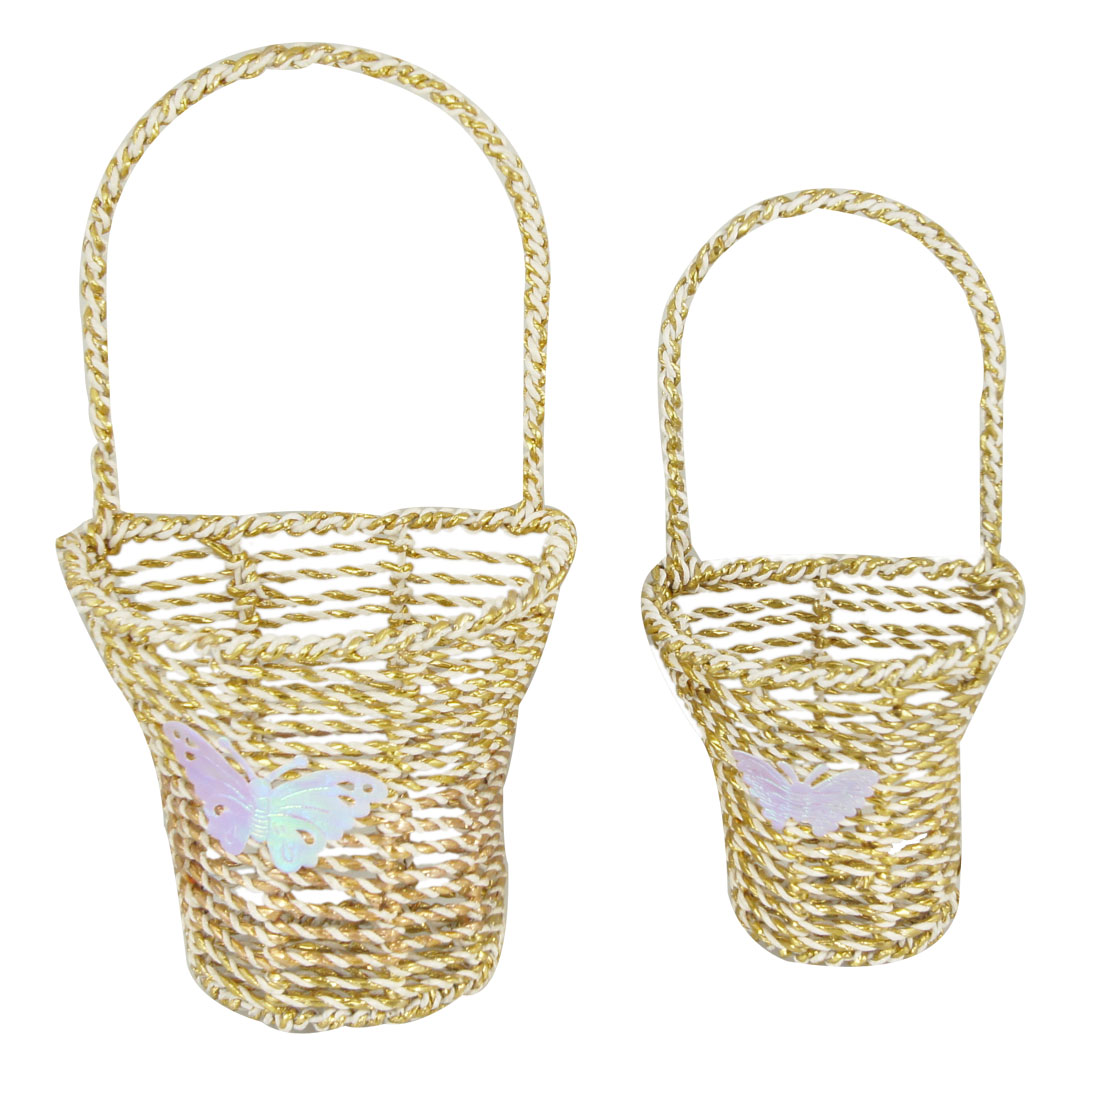 2 Pcs Gold Tone White Twisted Tinfoil Paper Desk Decor Flower Basket Holder